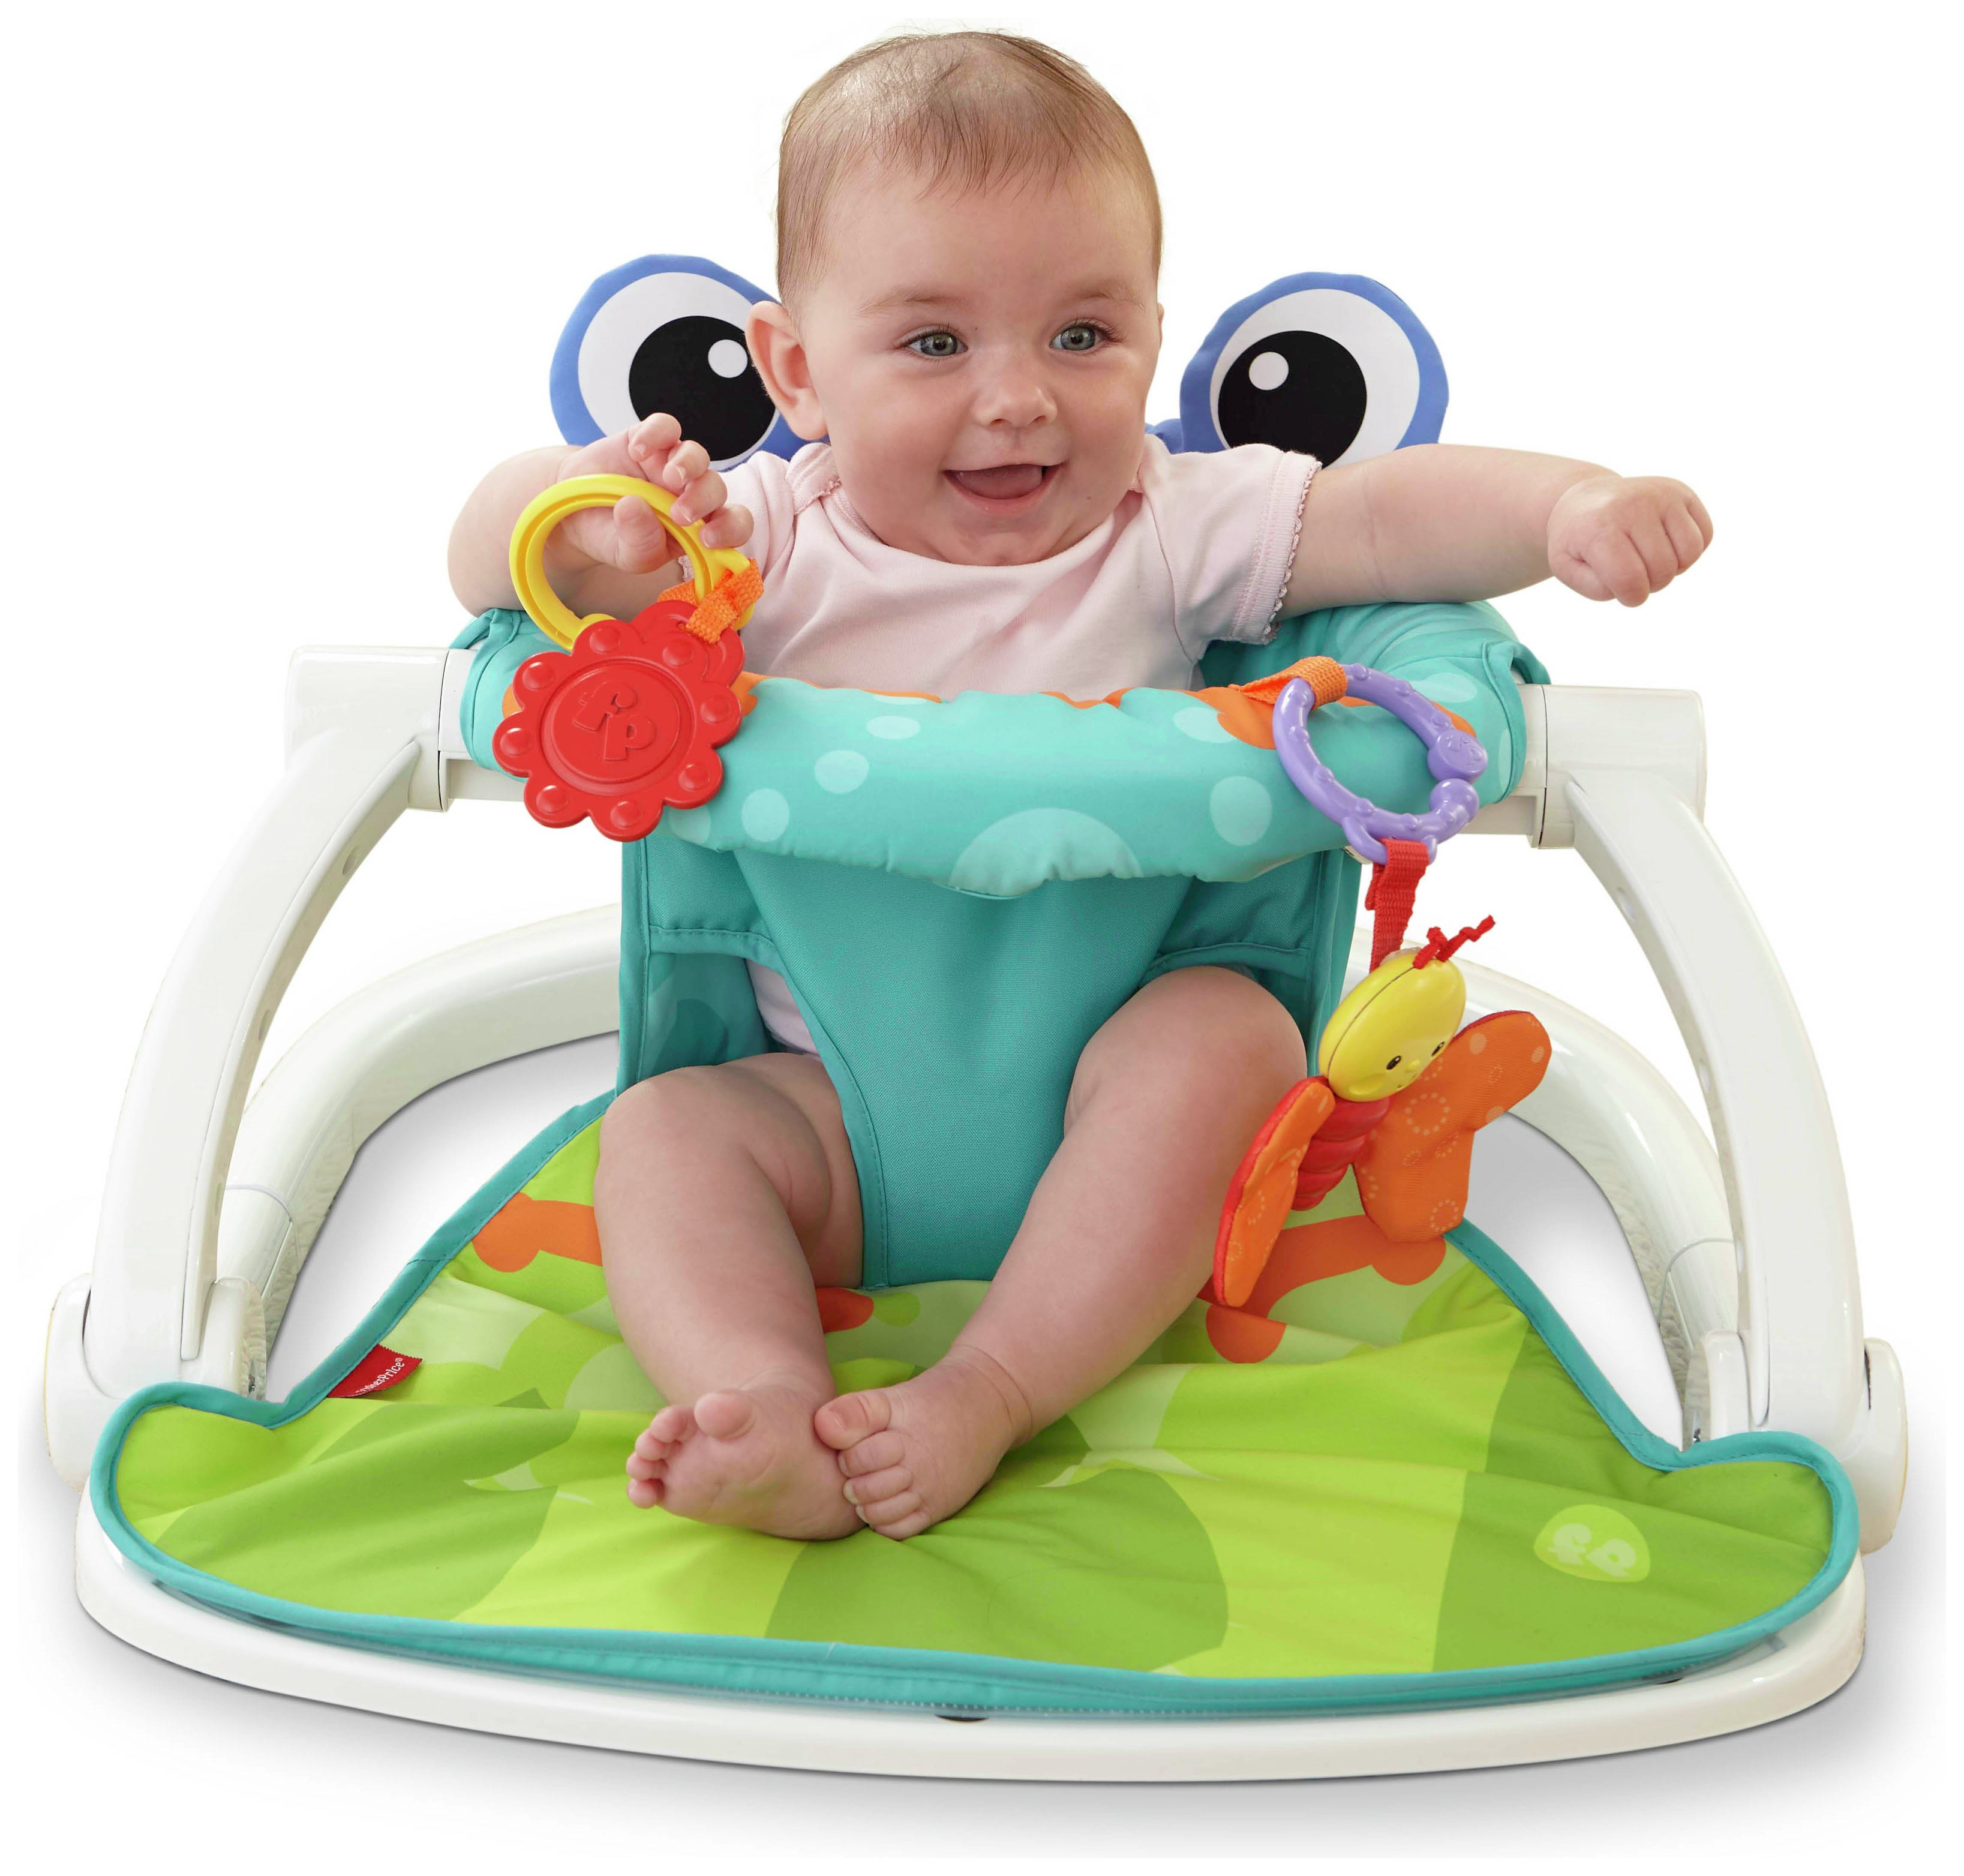 Image of Froggy Sit Me Up Floor Seat.